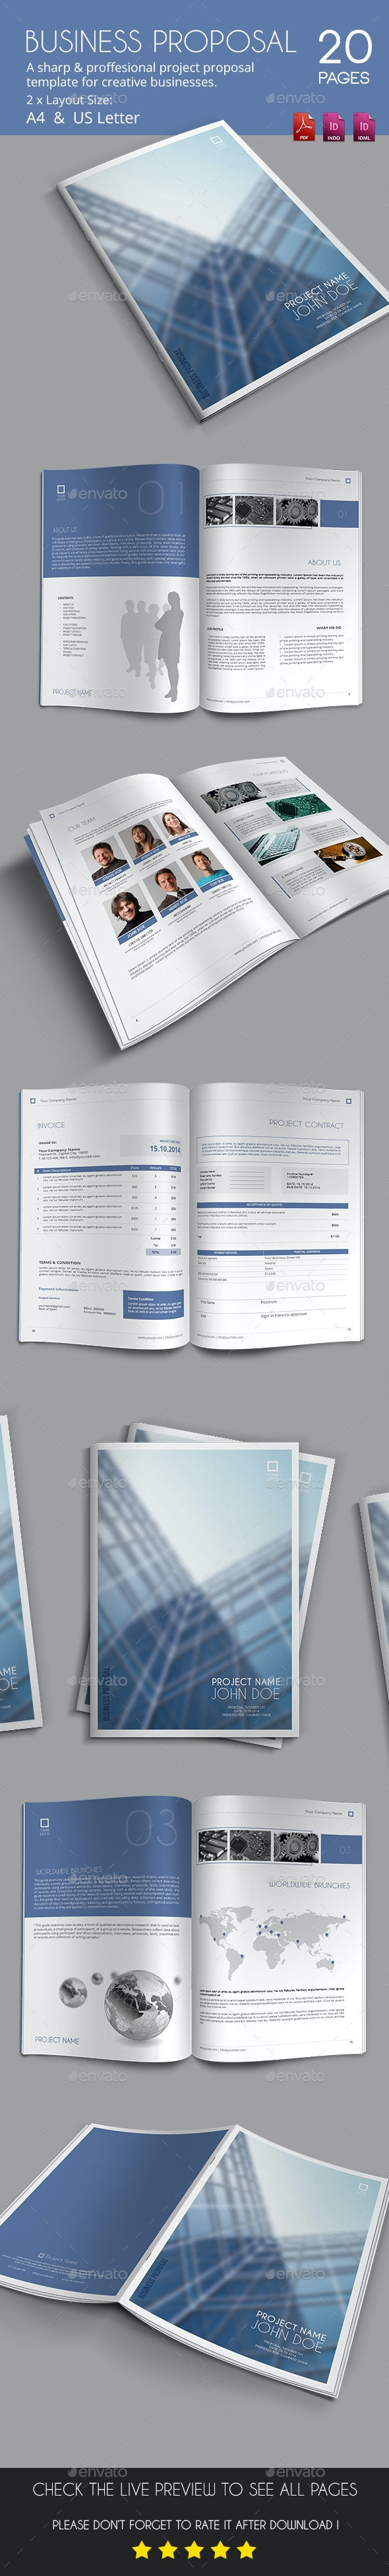 Business Proposal 2 - Proposals & Invoices Stationery